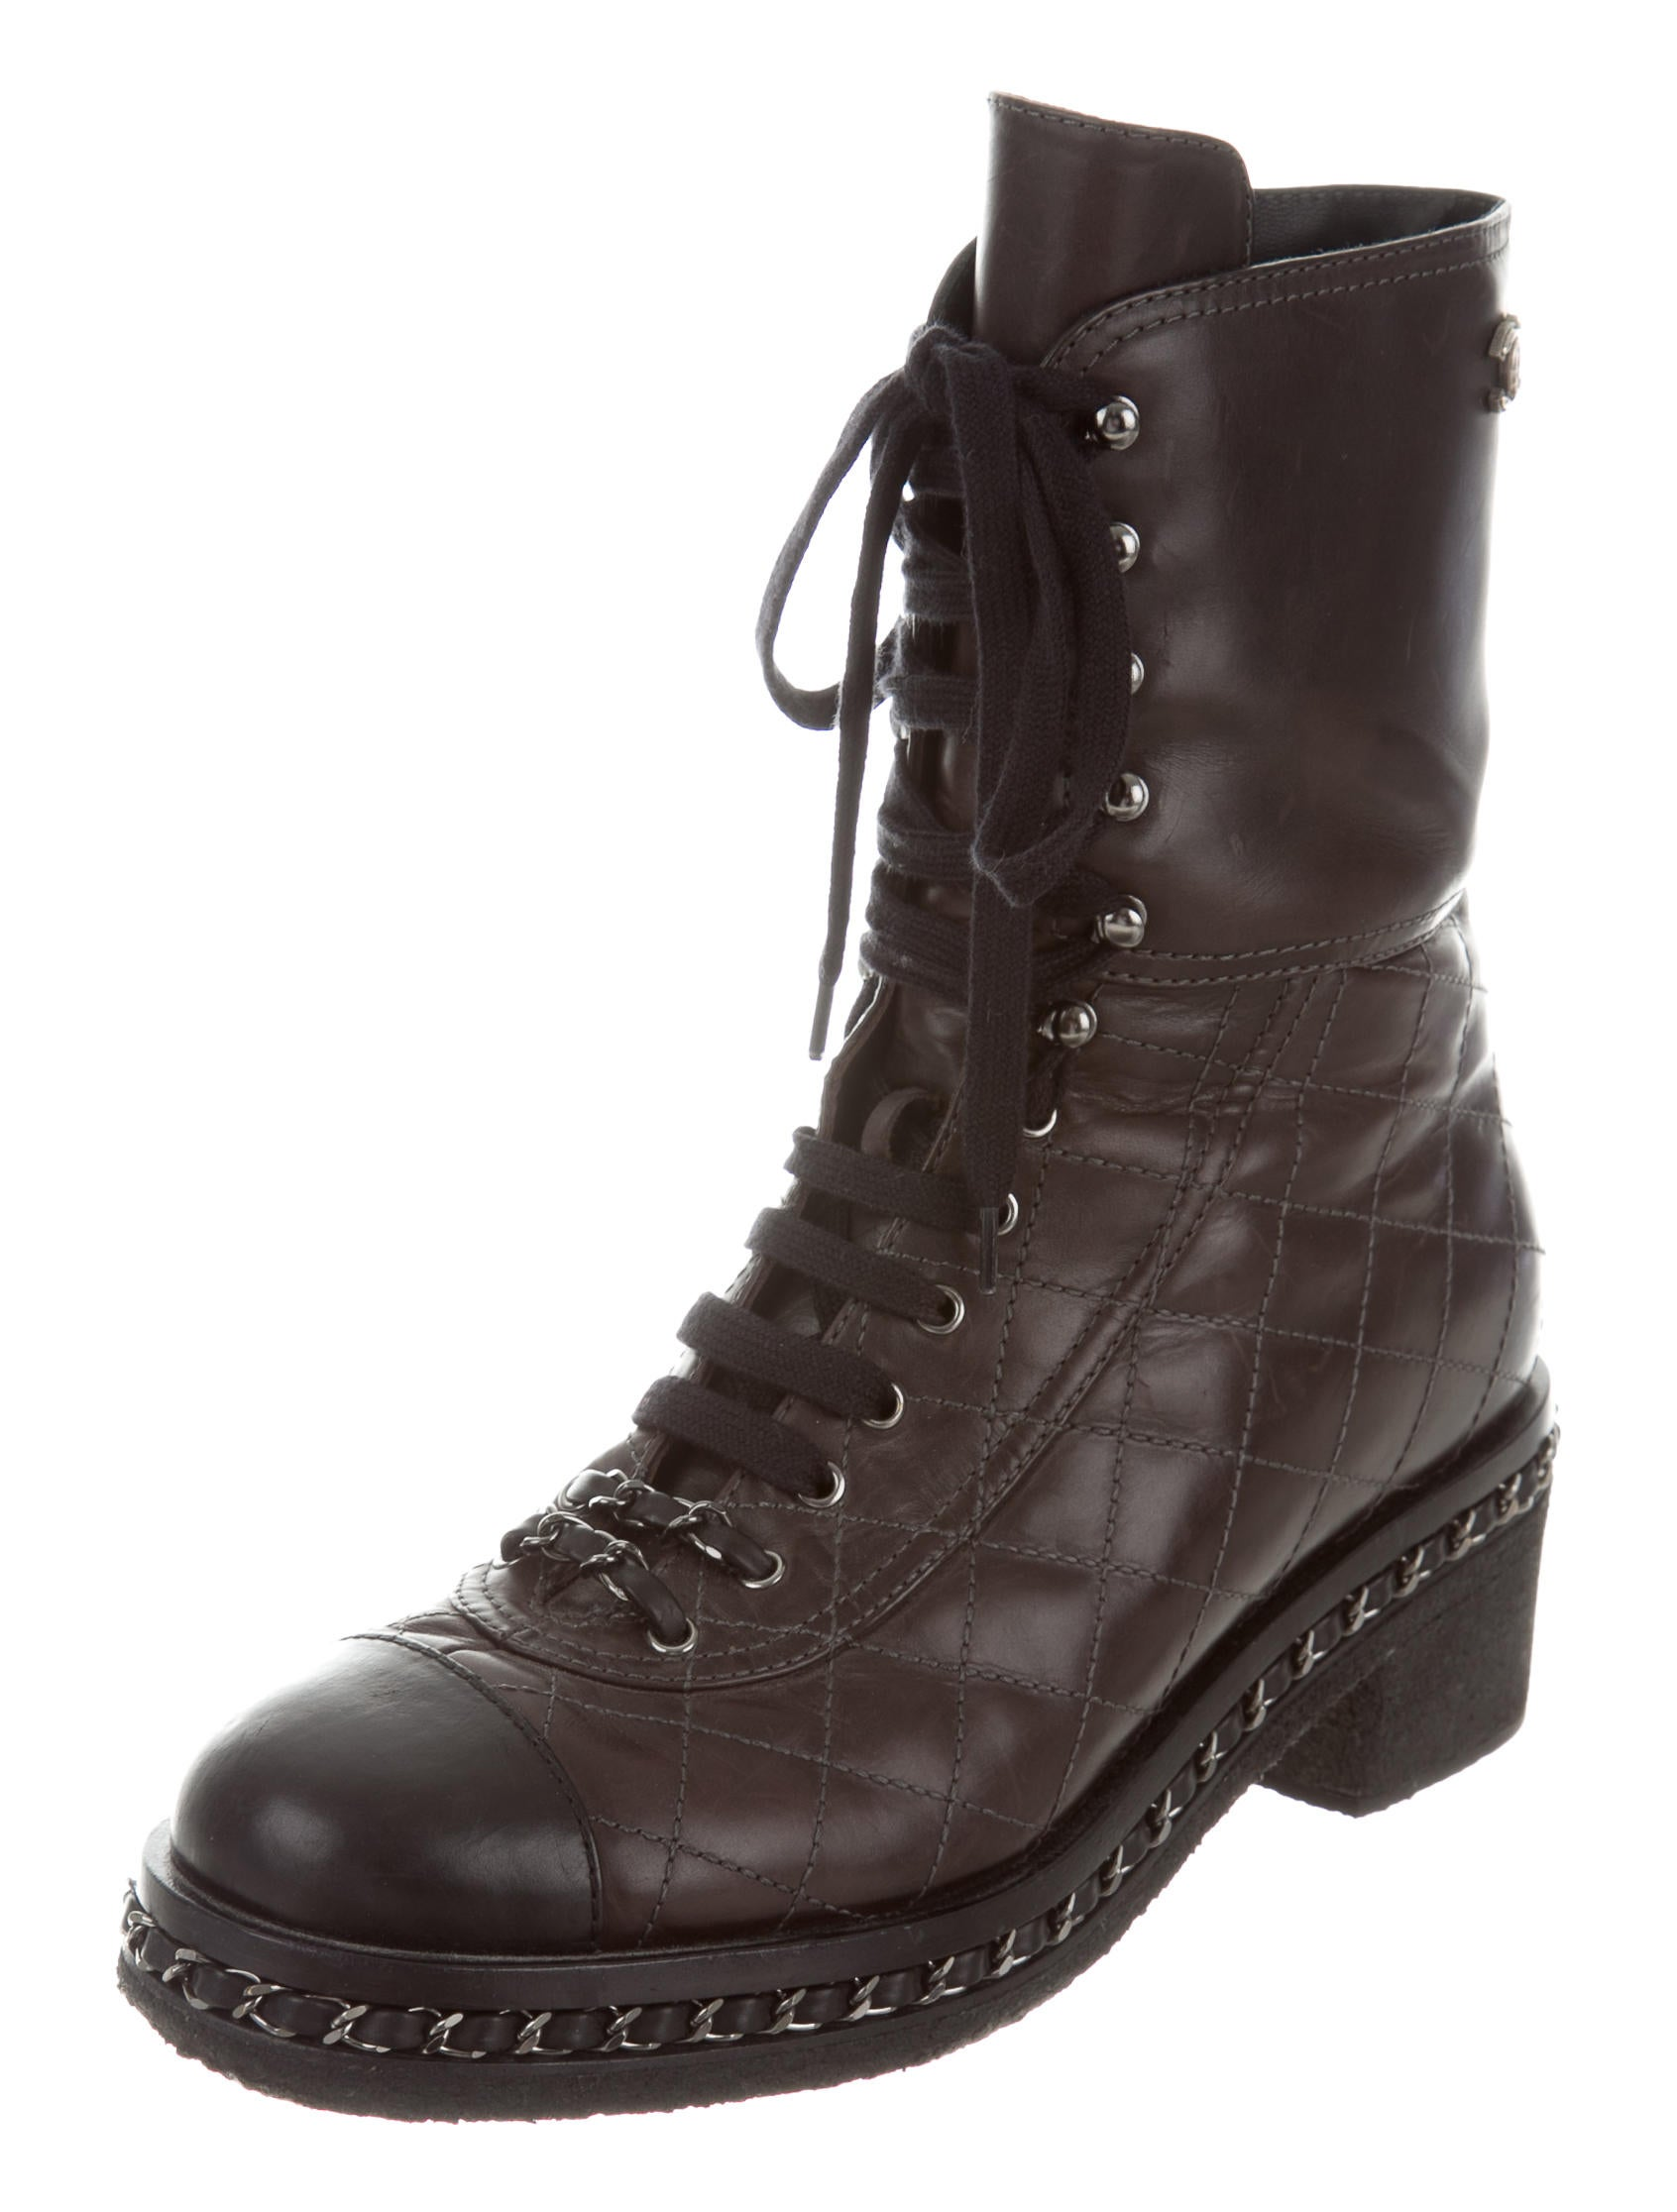 Chanel Quilted Combat Boots Shoes Cha155192 The Realreal